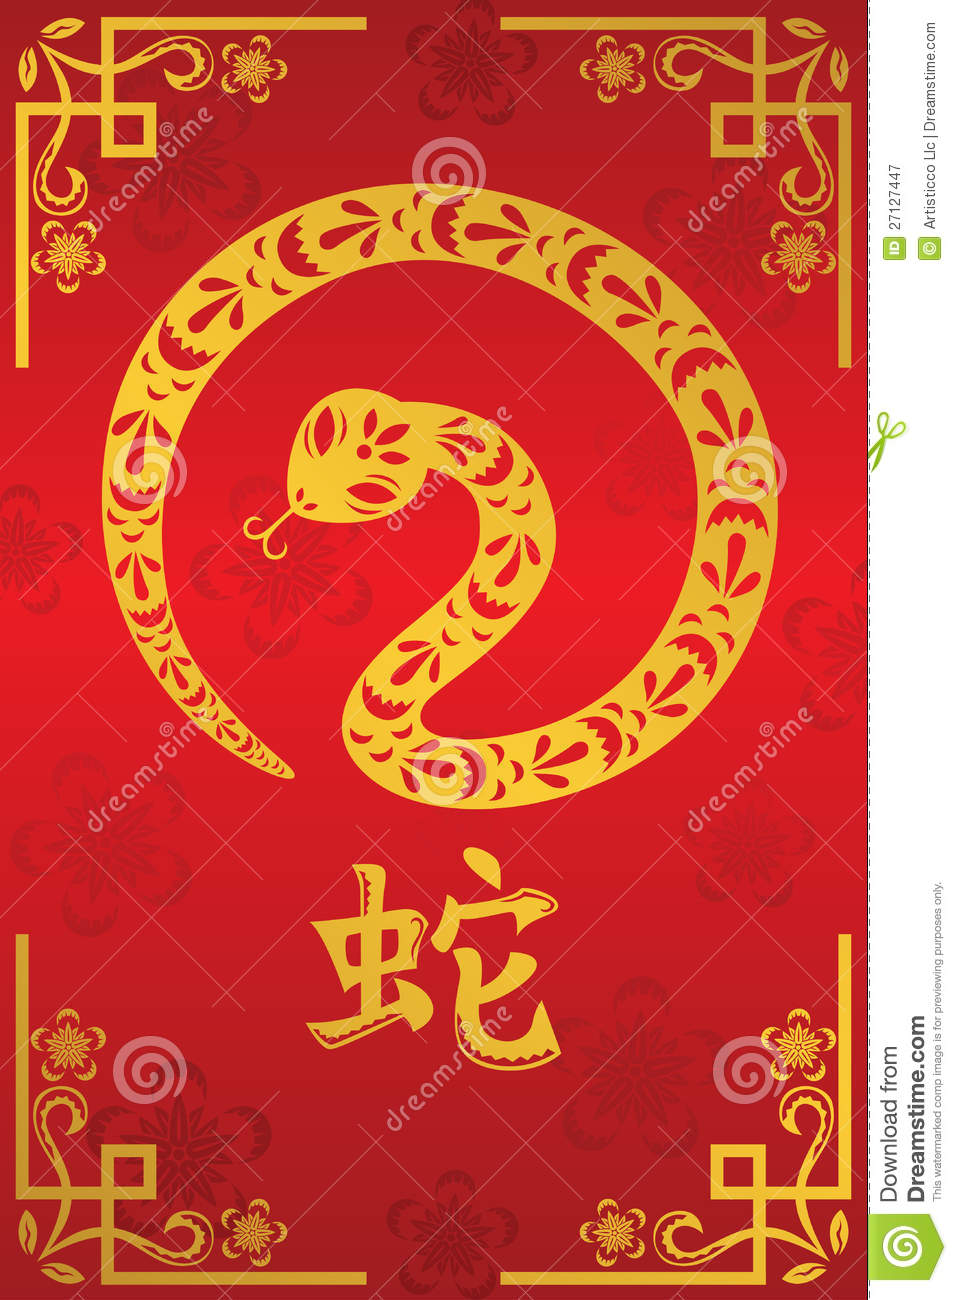 Chinese New Year Of Snake Royalty Free Stock Photography ...